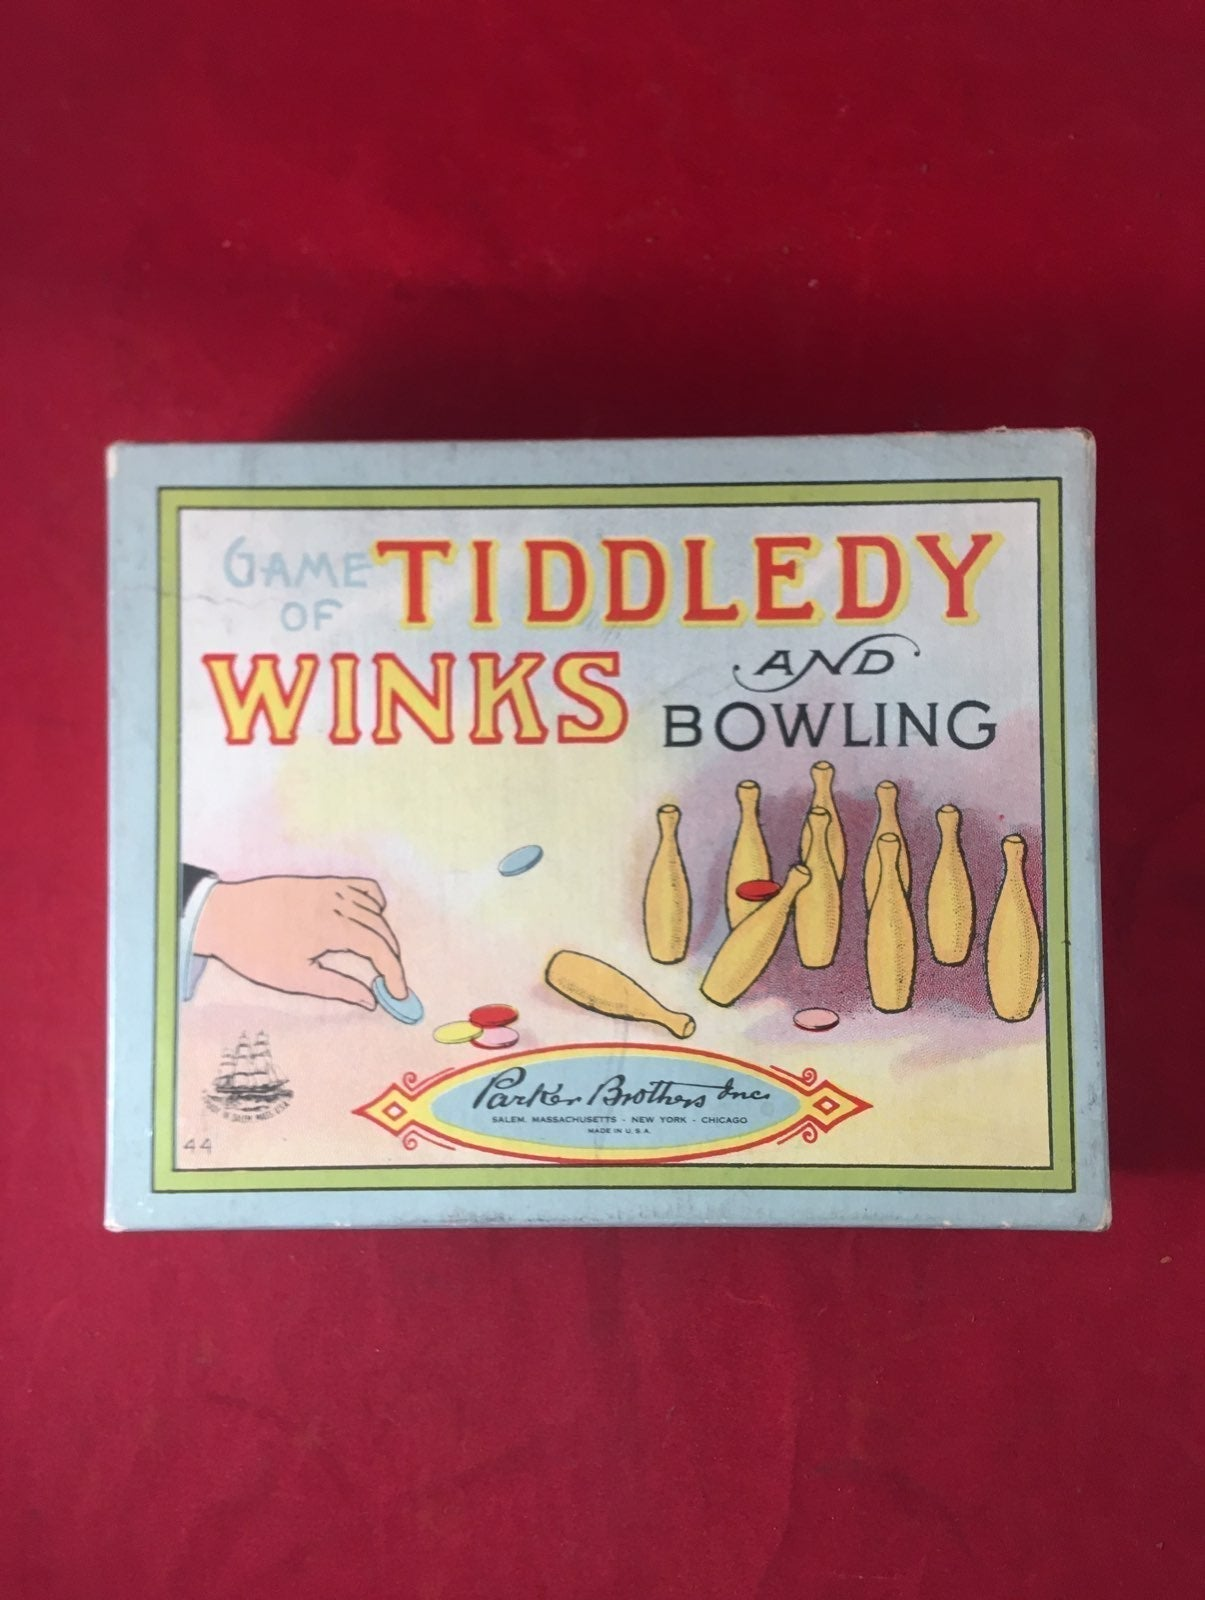 Game Tiddledy Winks & Bowling